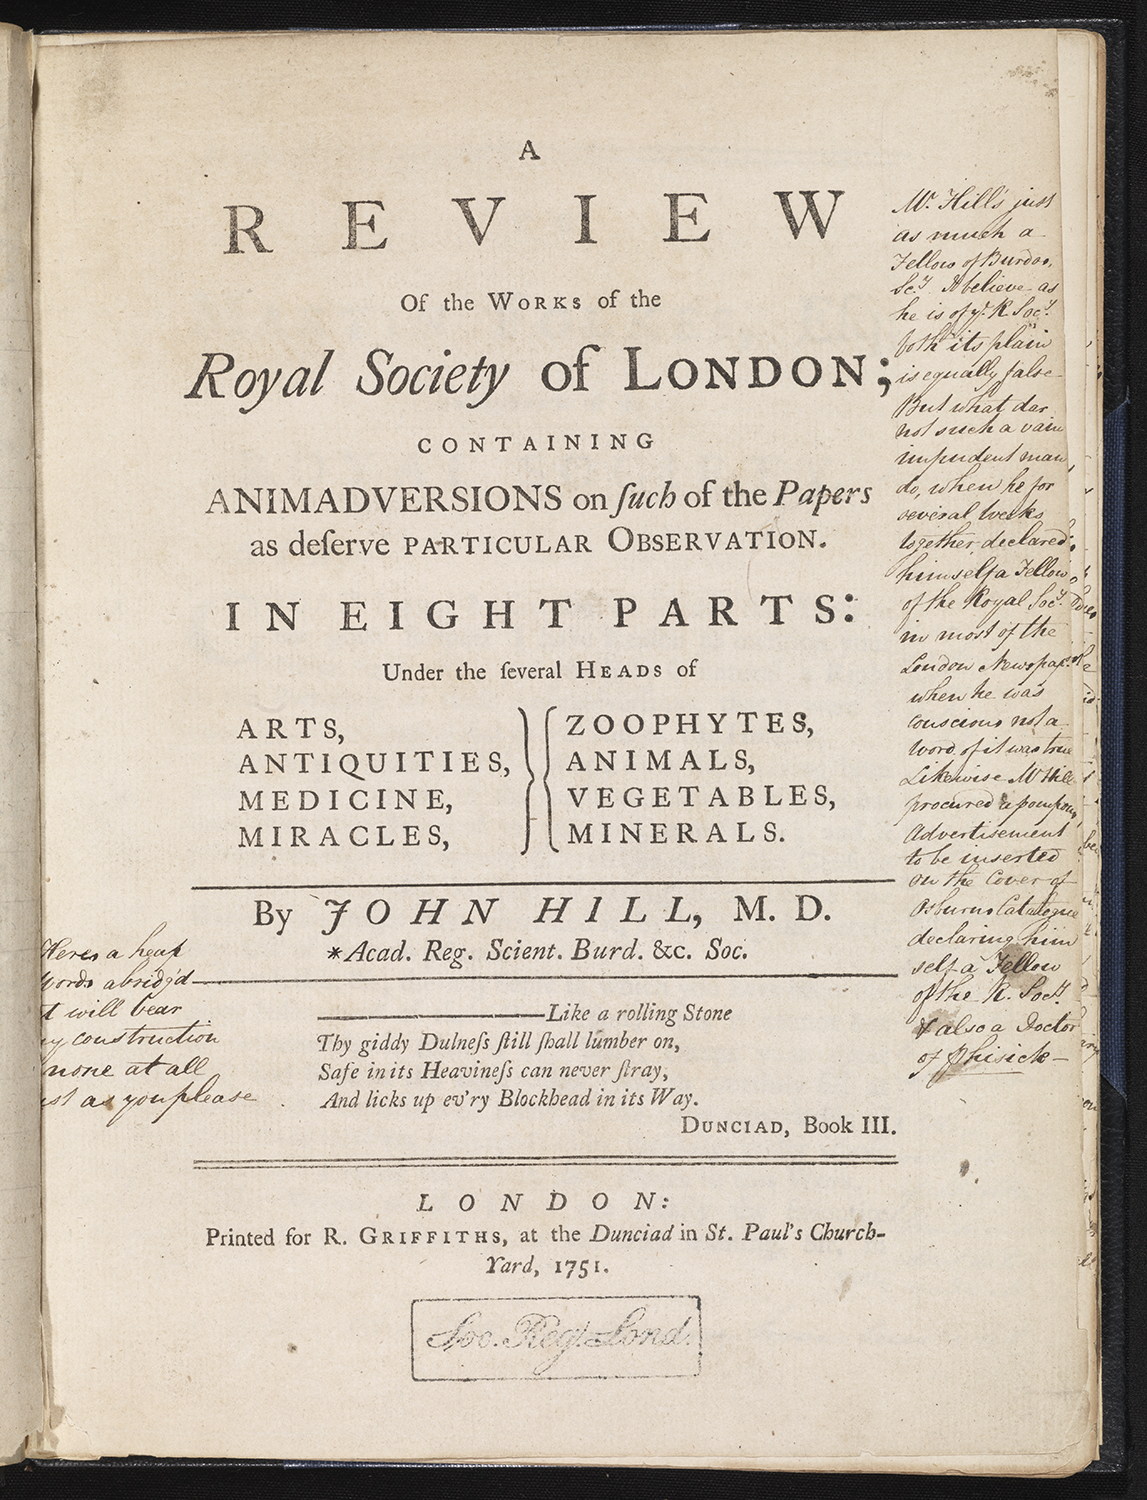 The Review of the Works of the Royal Society' by John Hill, a book-length satirical critique of the Philosophical Transactions, attacking its past papers